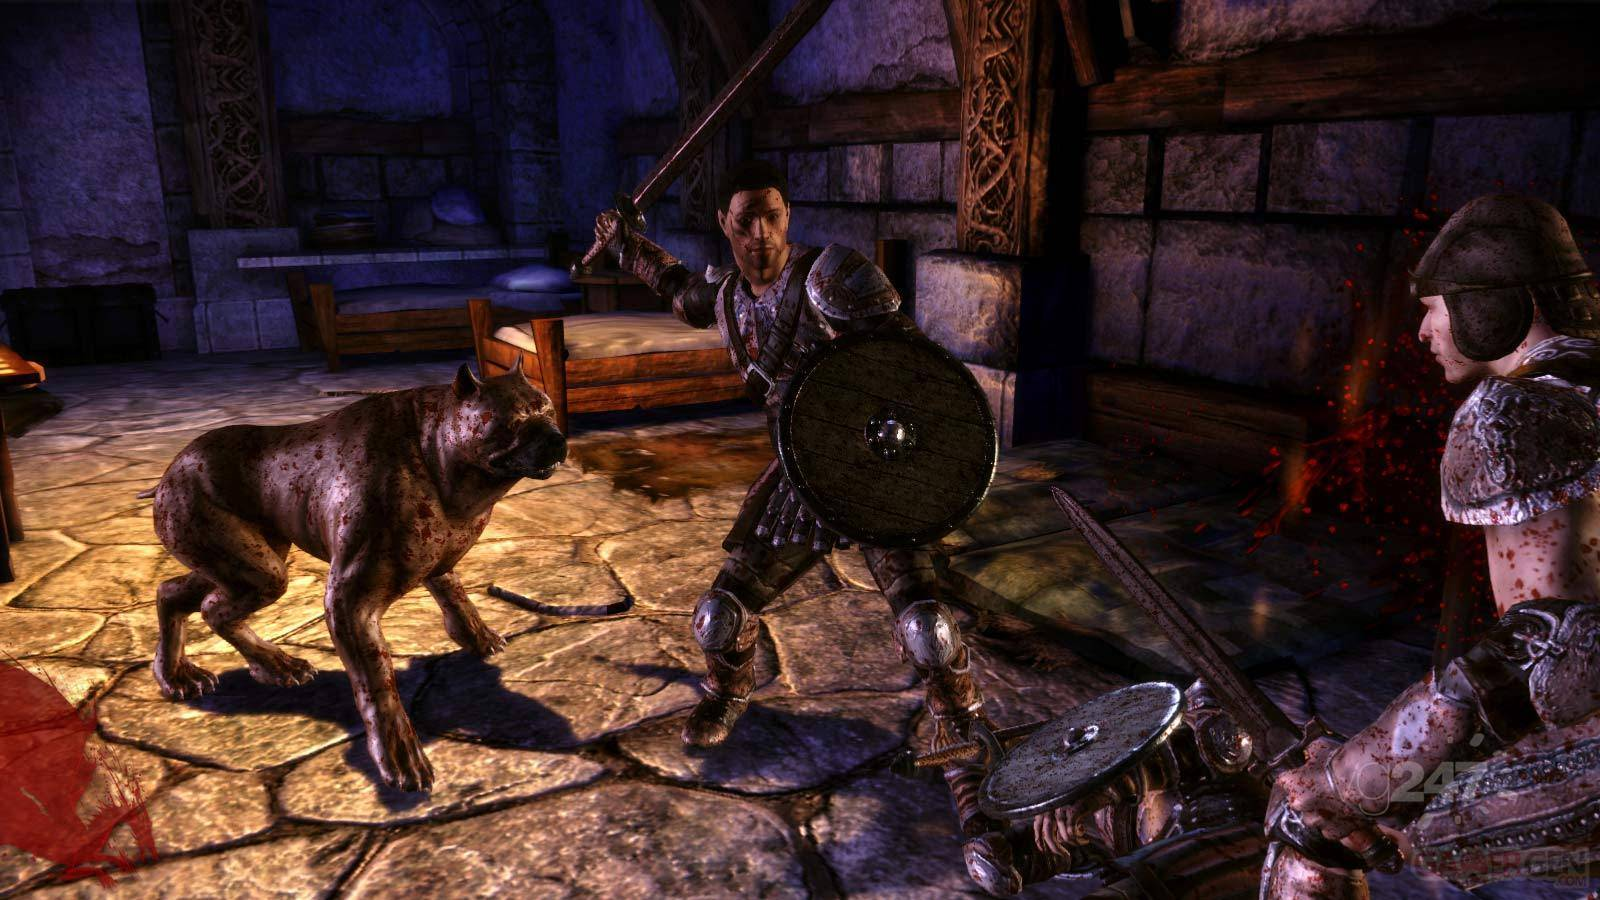 dragon age origins noble11_jpg_jpgcopy